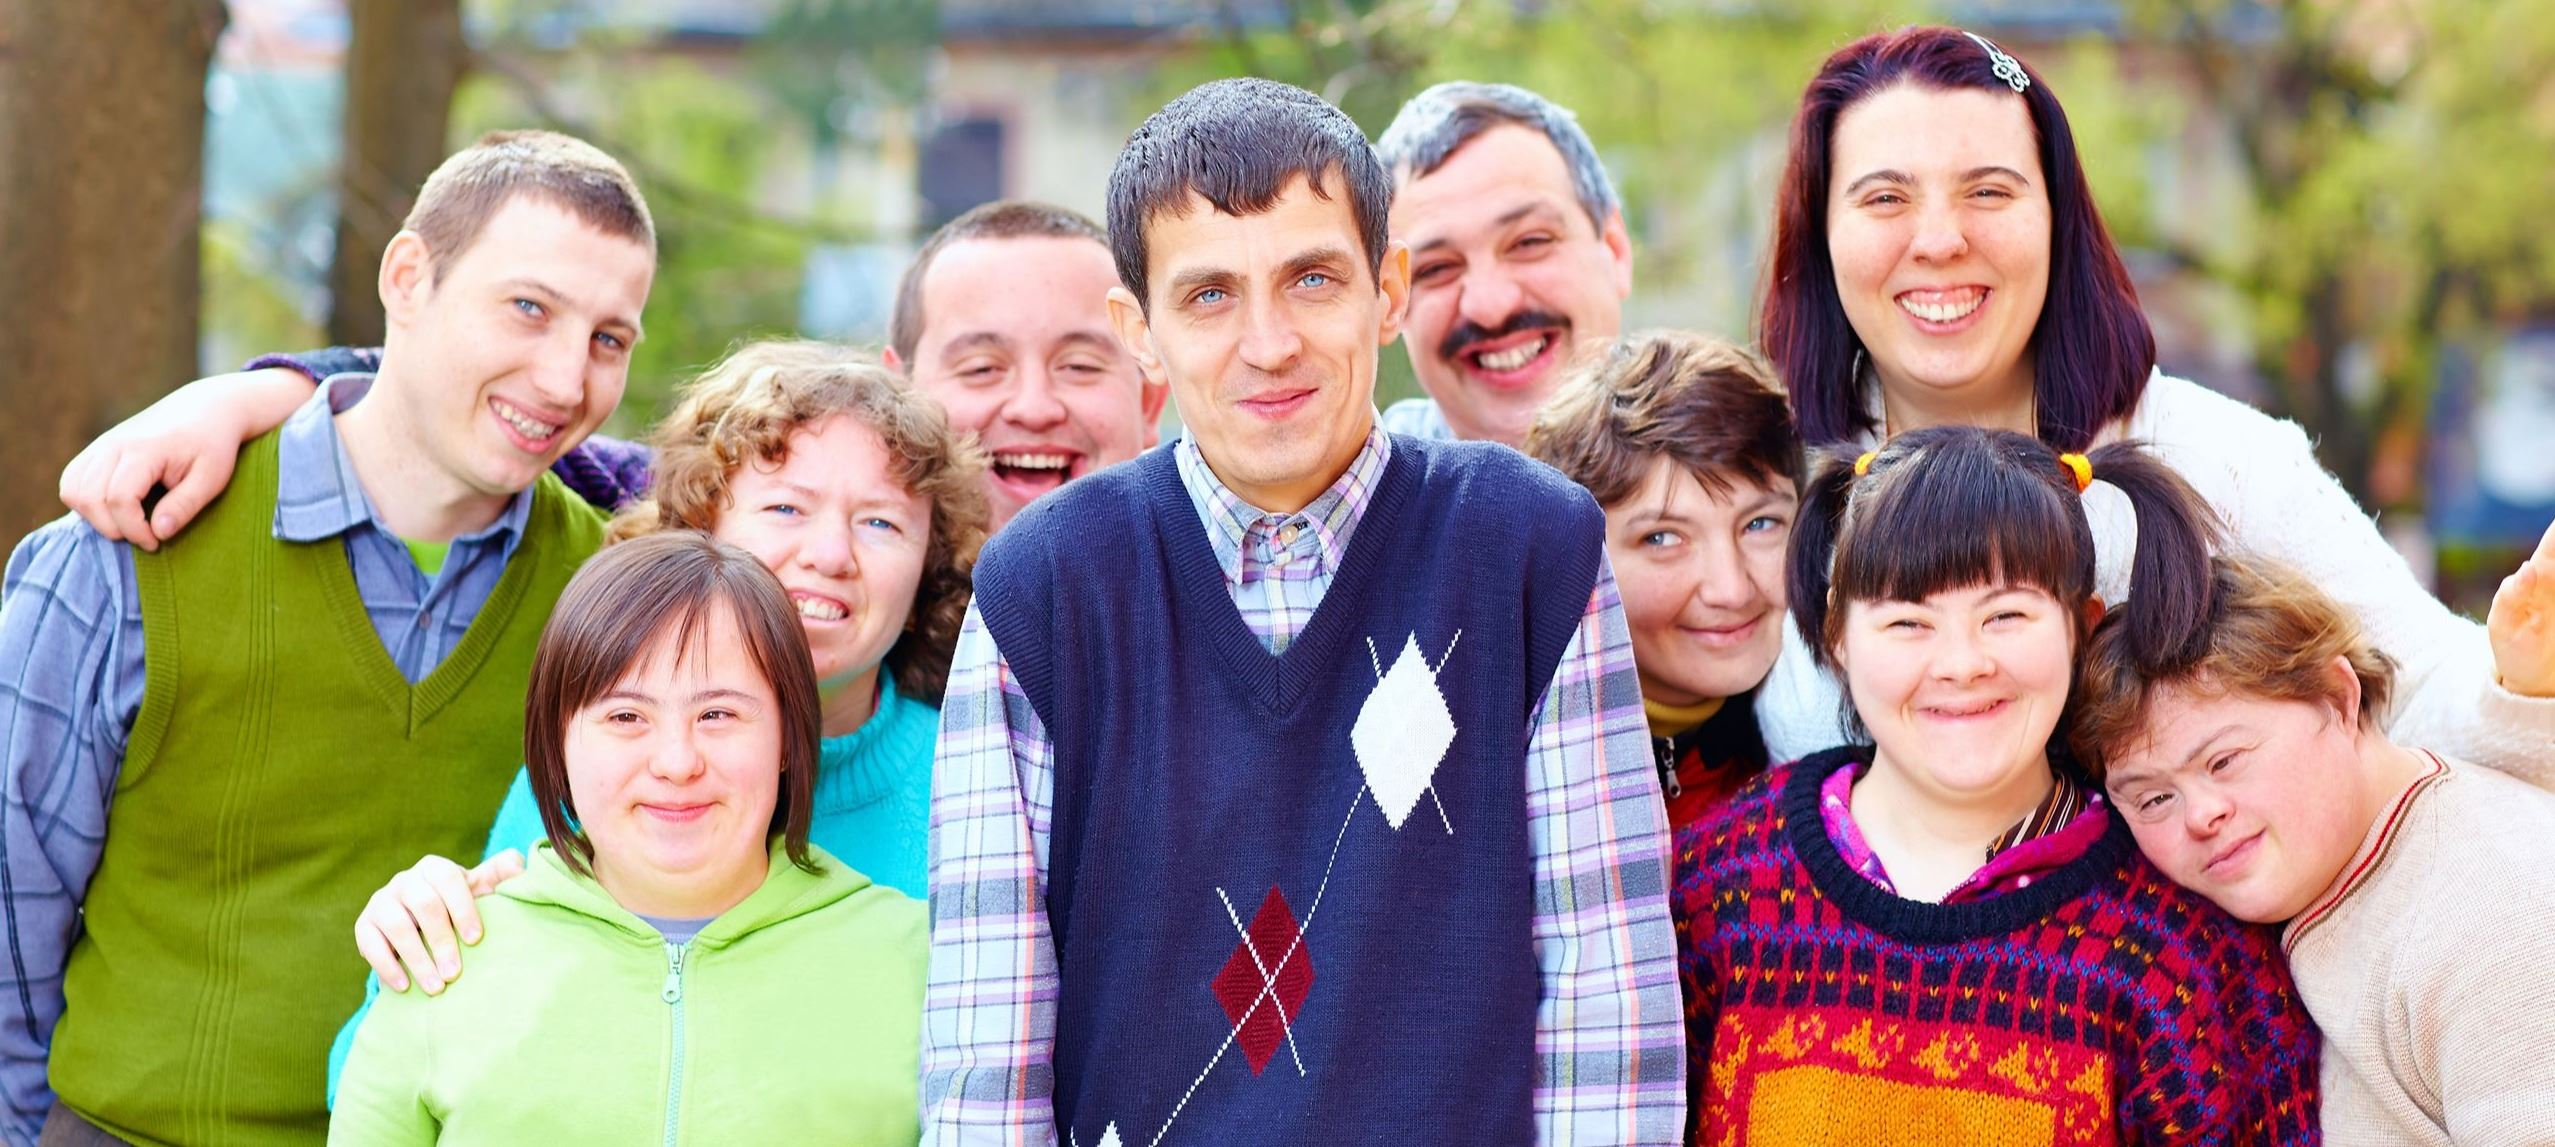 Group of individuals with disabilities